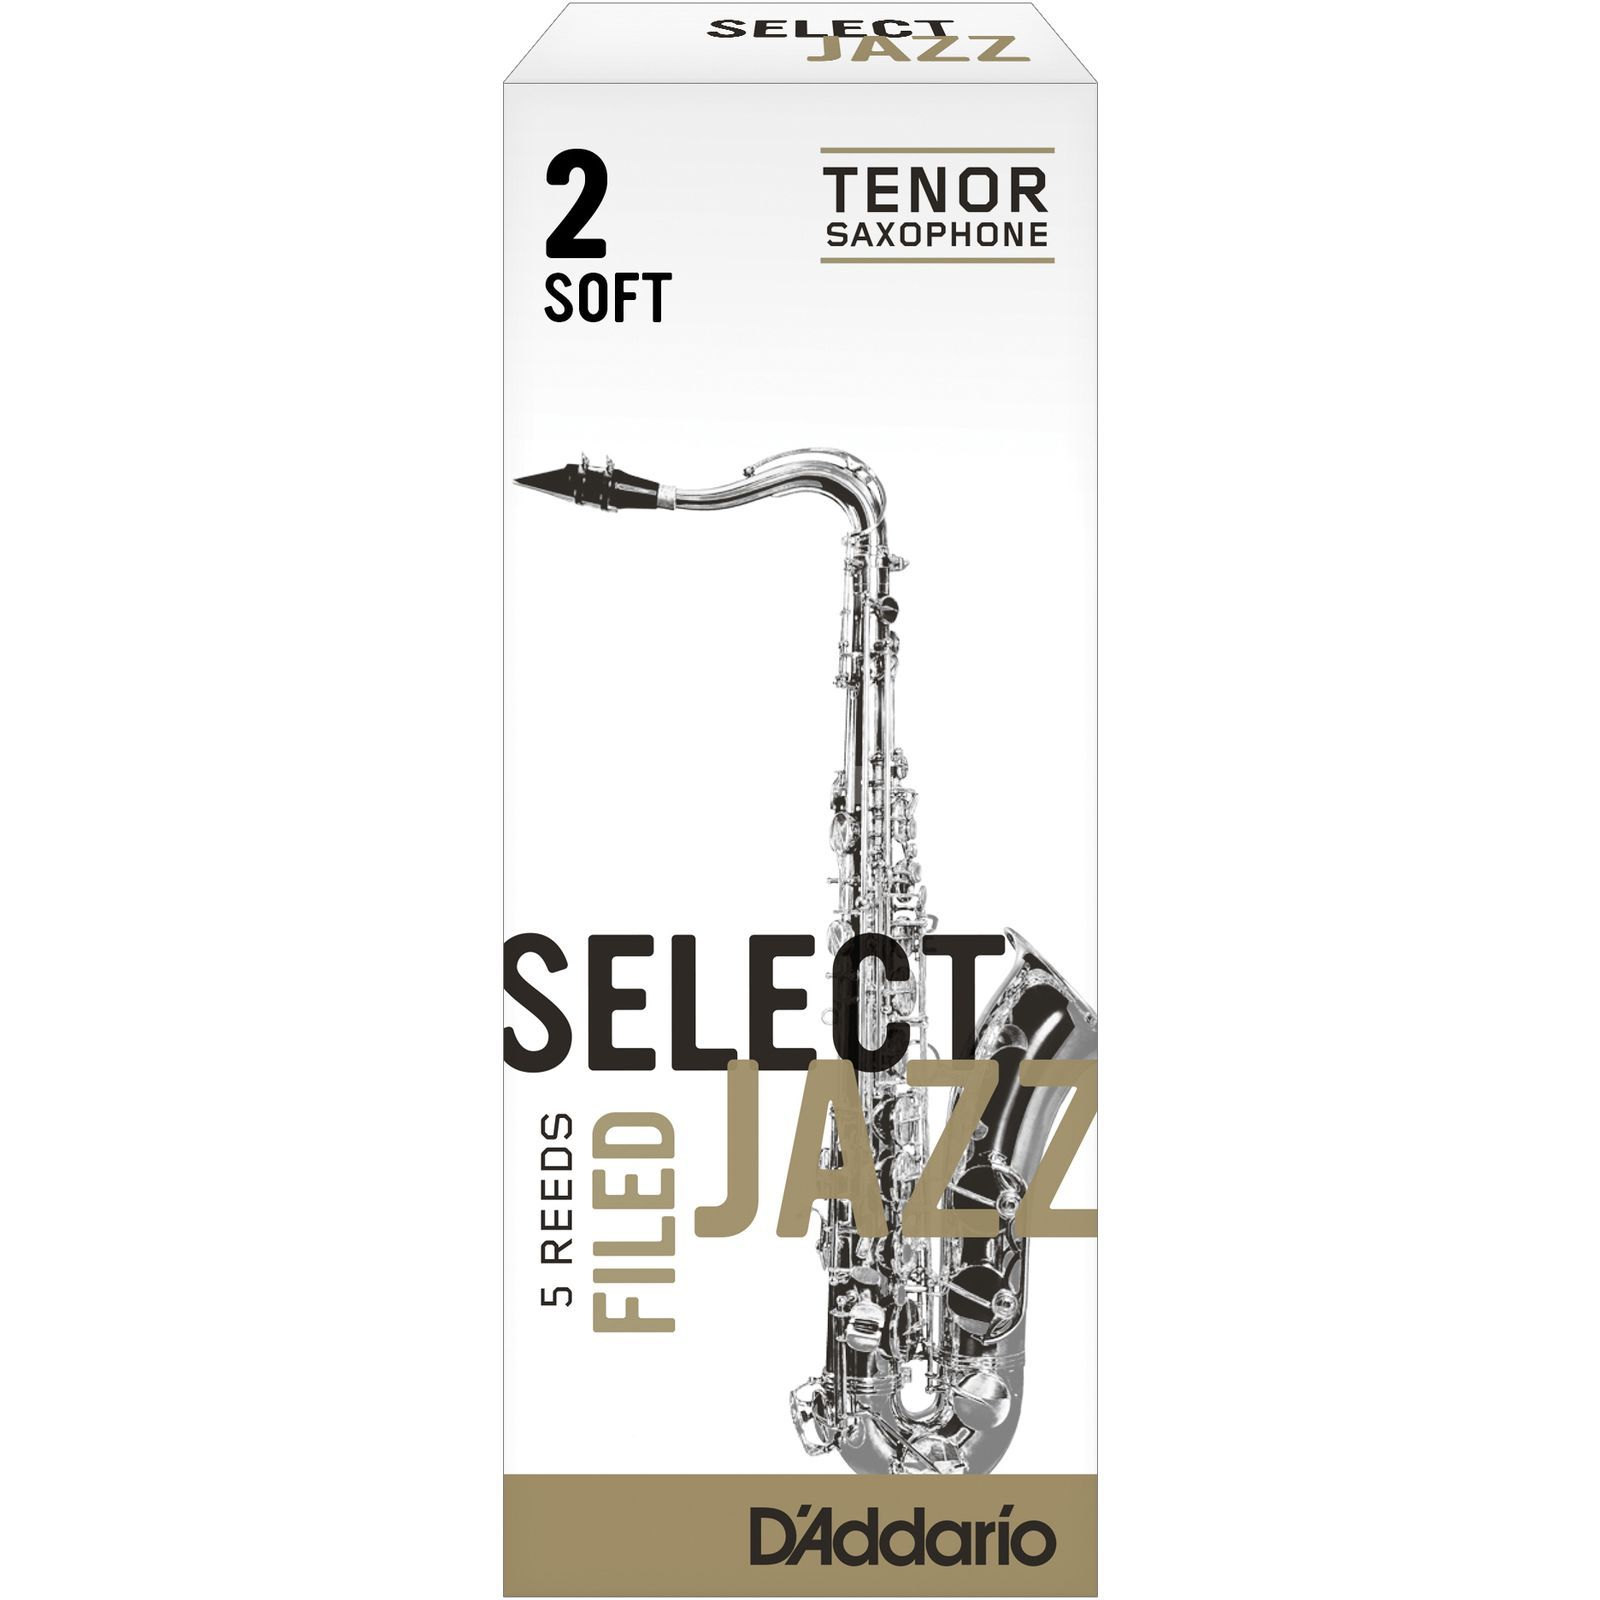 D'Addario Woodwinds Tenor Sax Reeds 2S Box of 5 Изображение товара